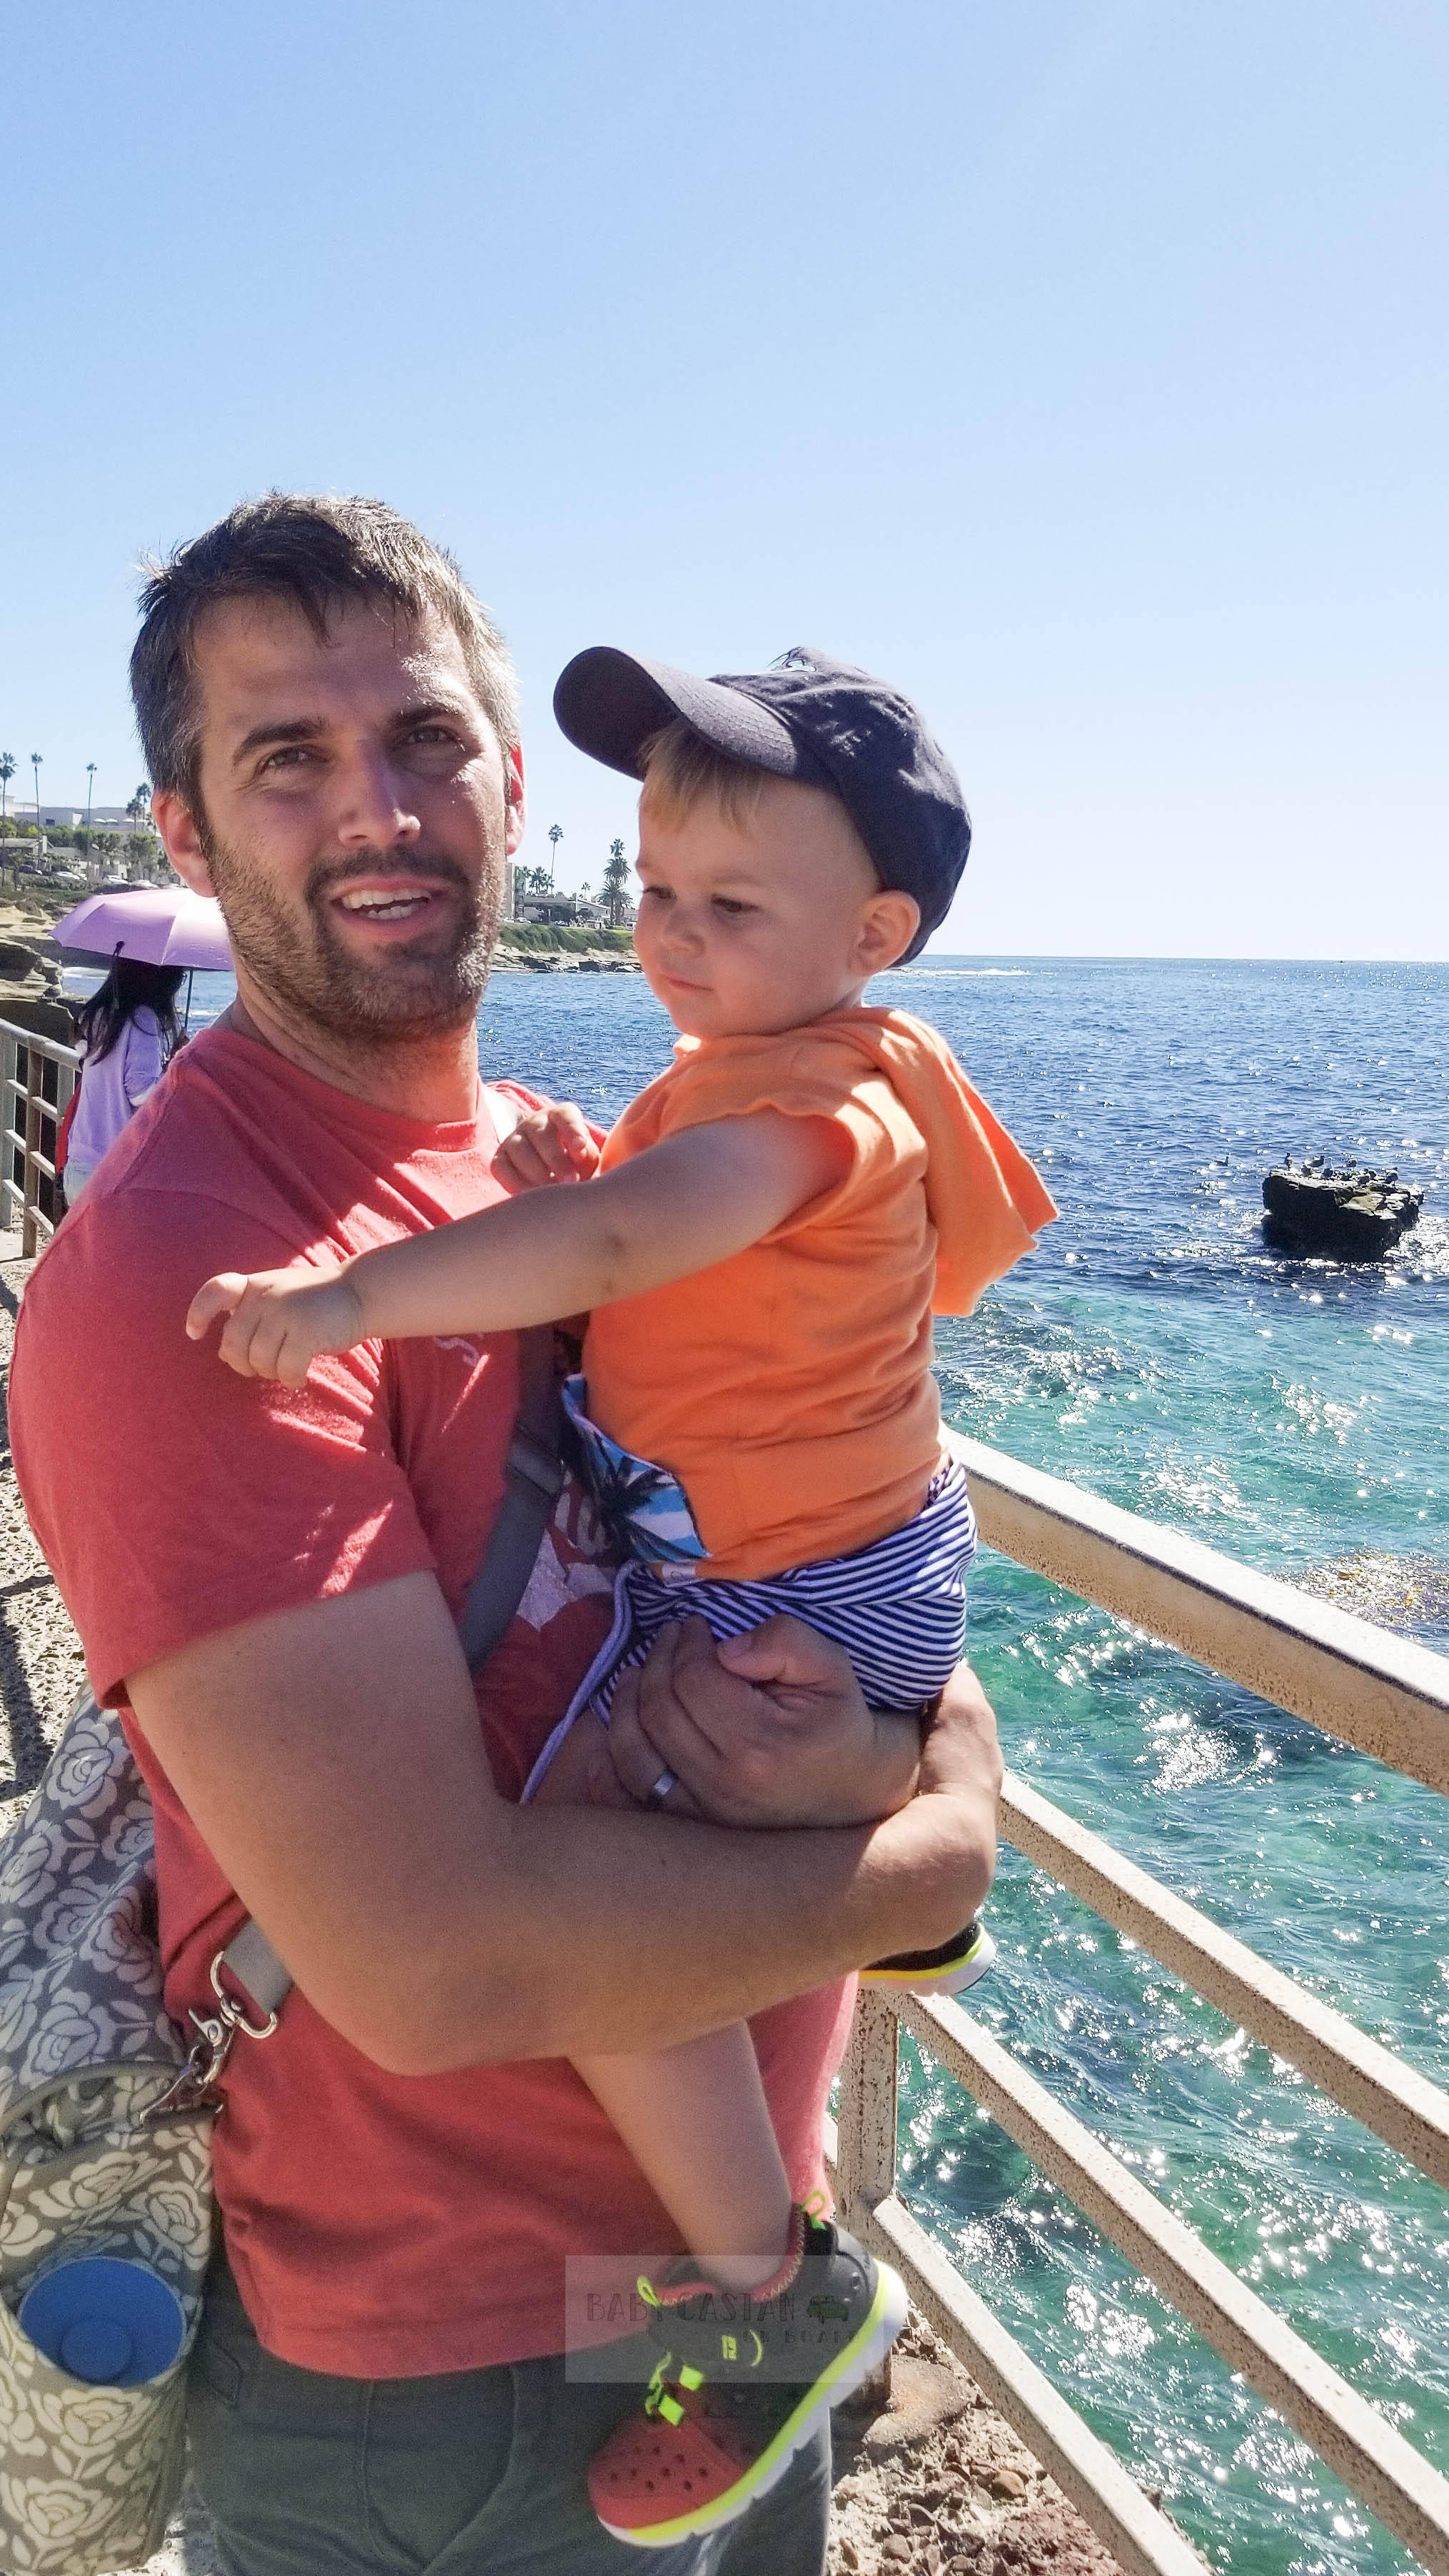 We went on vacation to San Diego for ten days in September. Here are my favorite things to do in San Diego with a toddler.